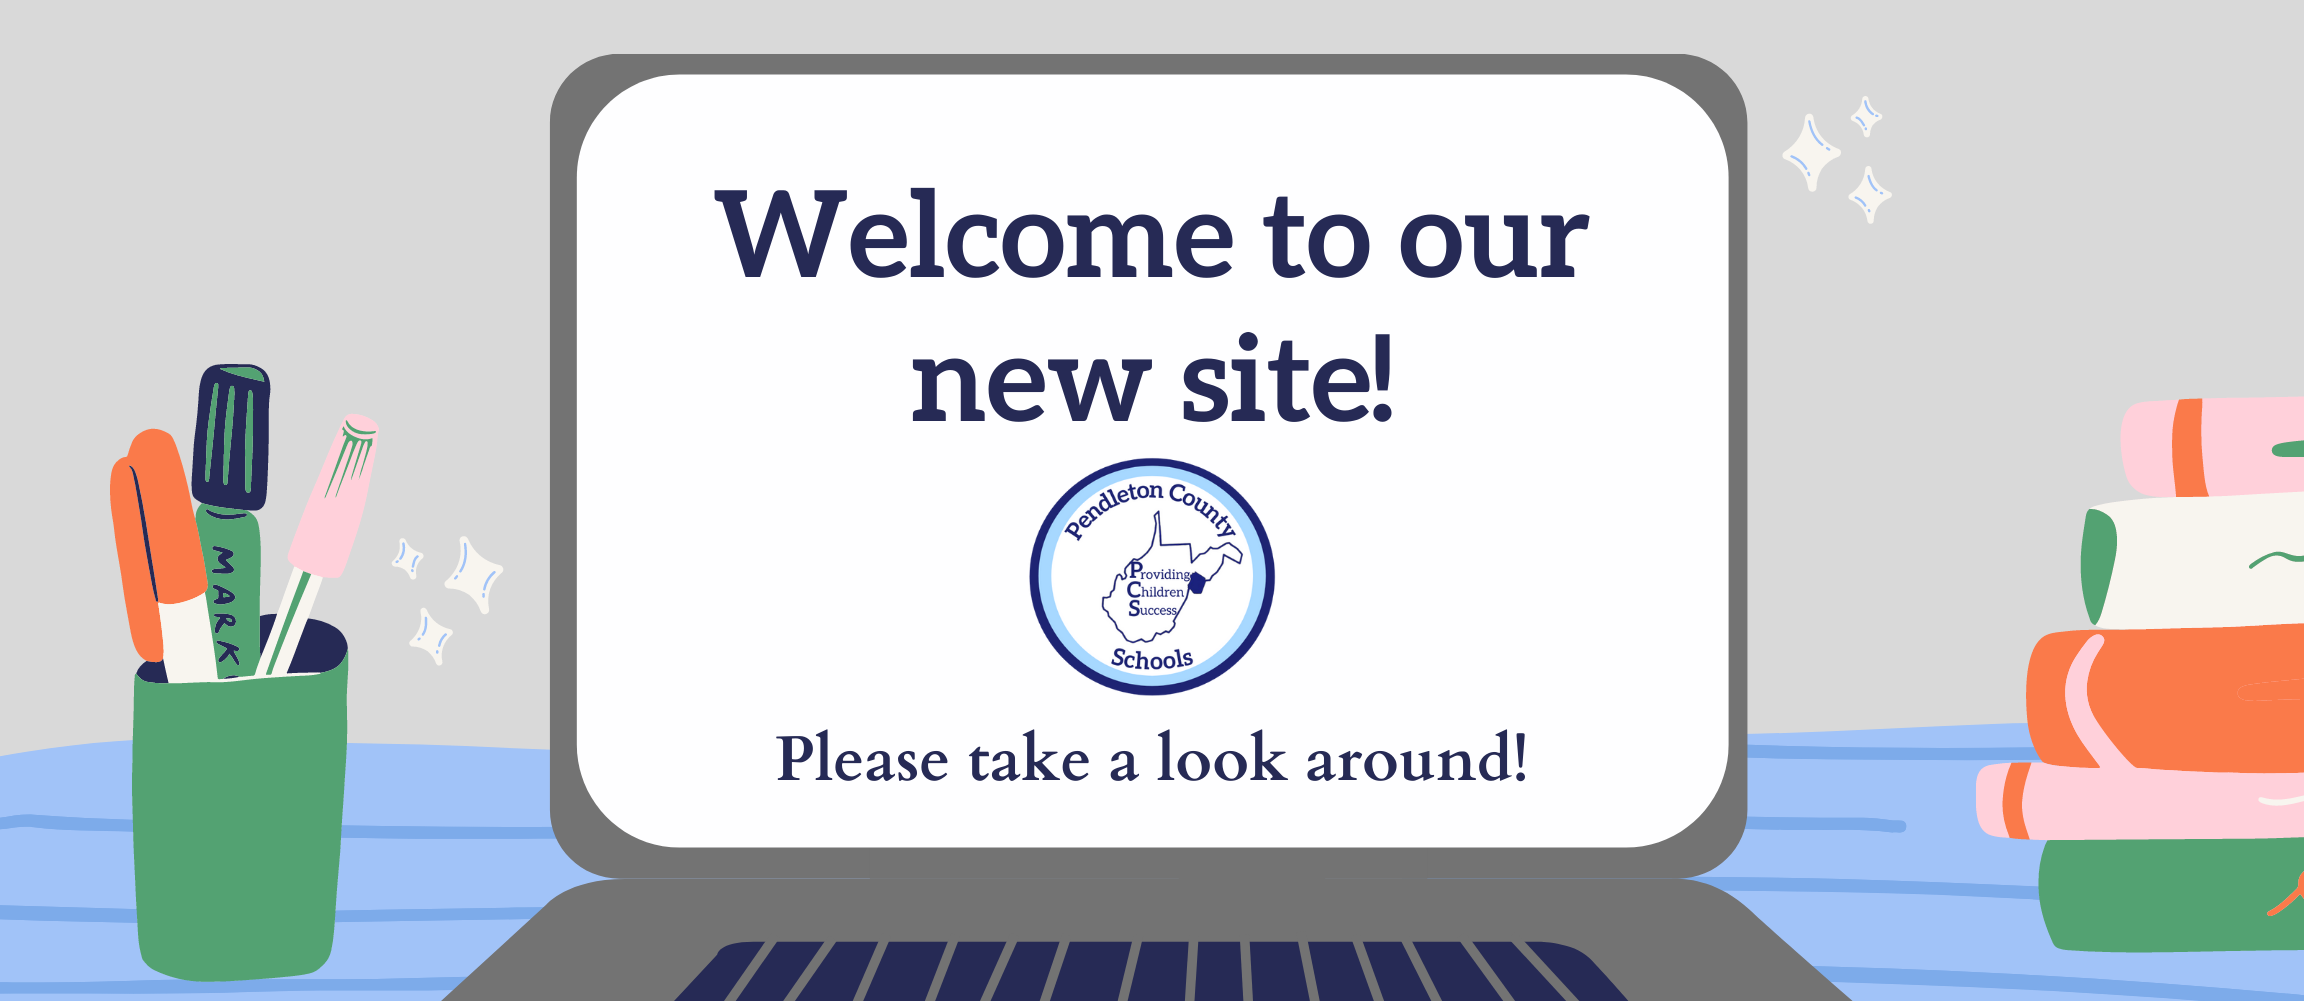 Welcome to our new site-image of computer